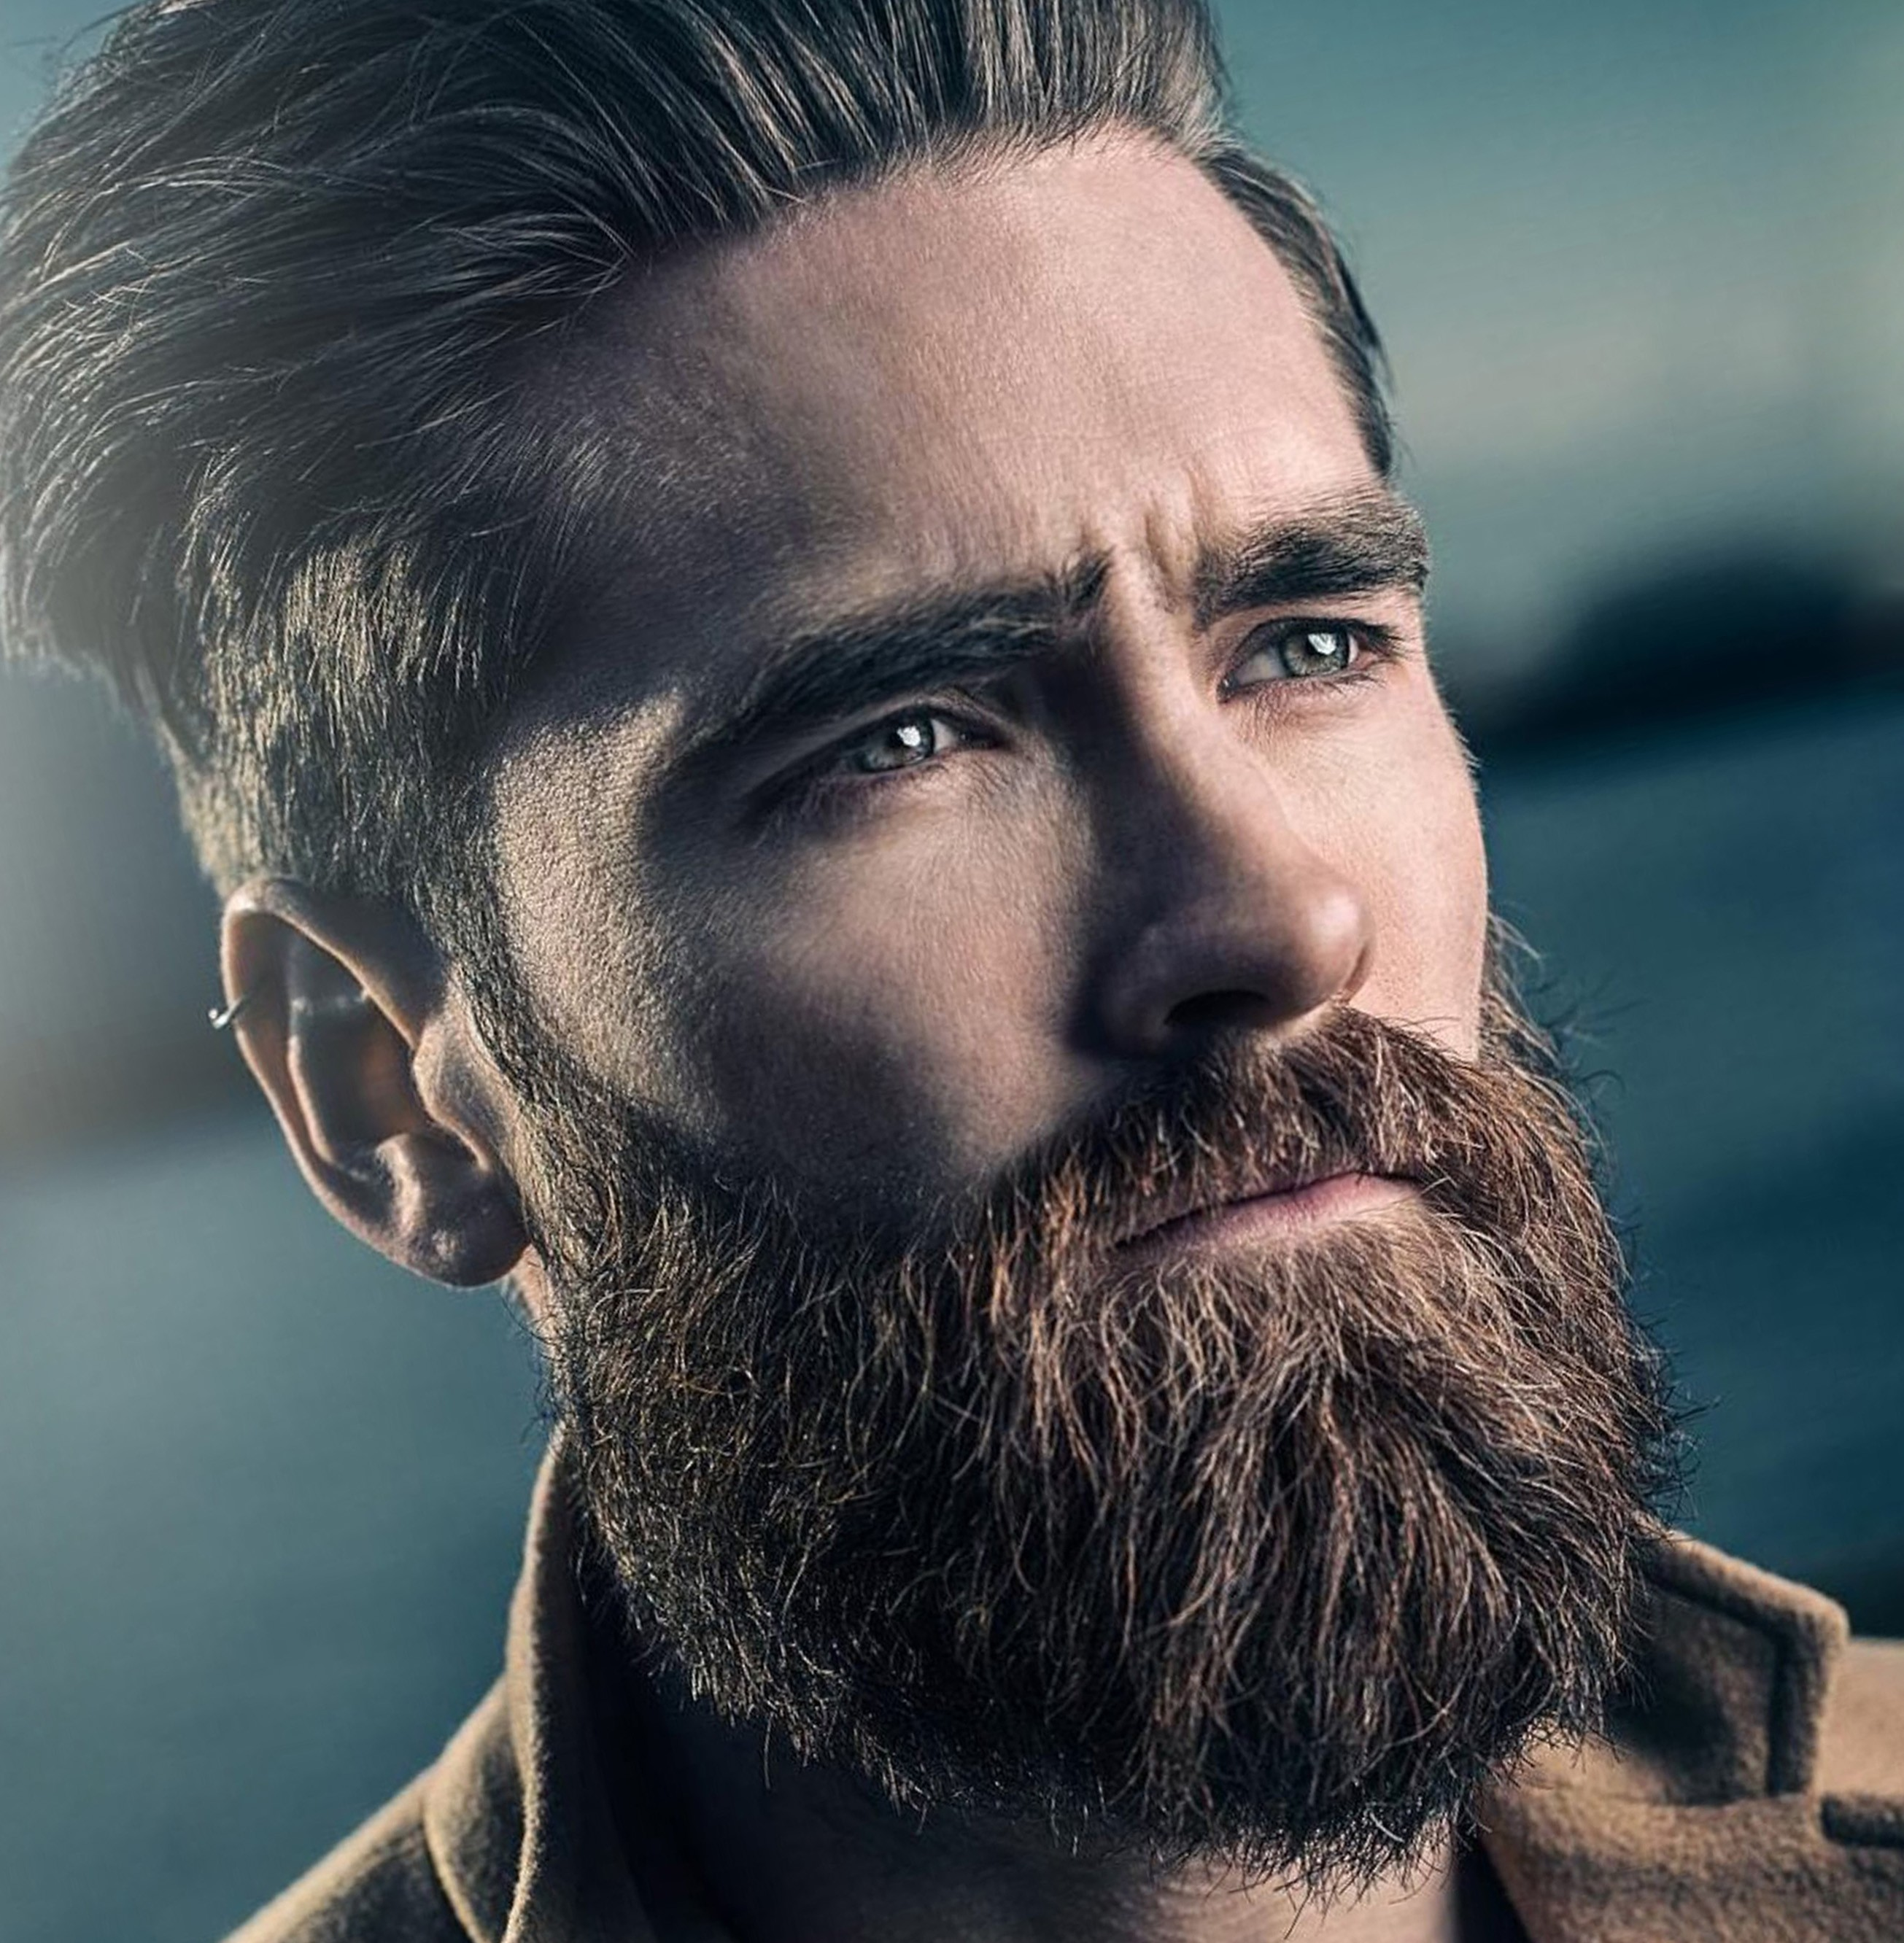 A full beard combined with the high faded style.